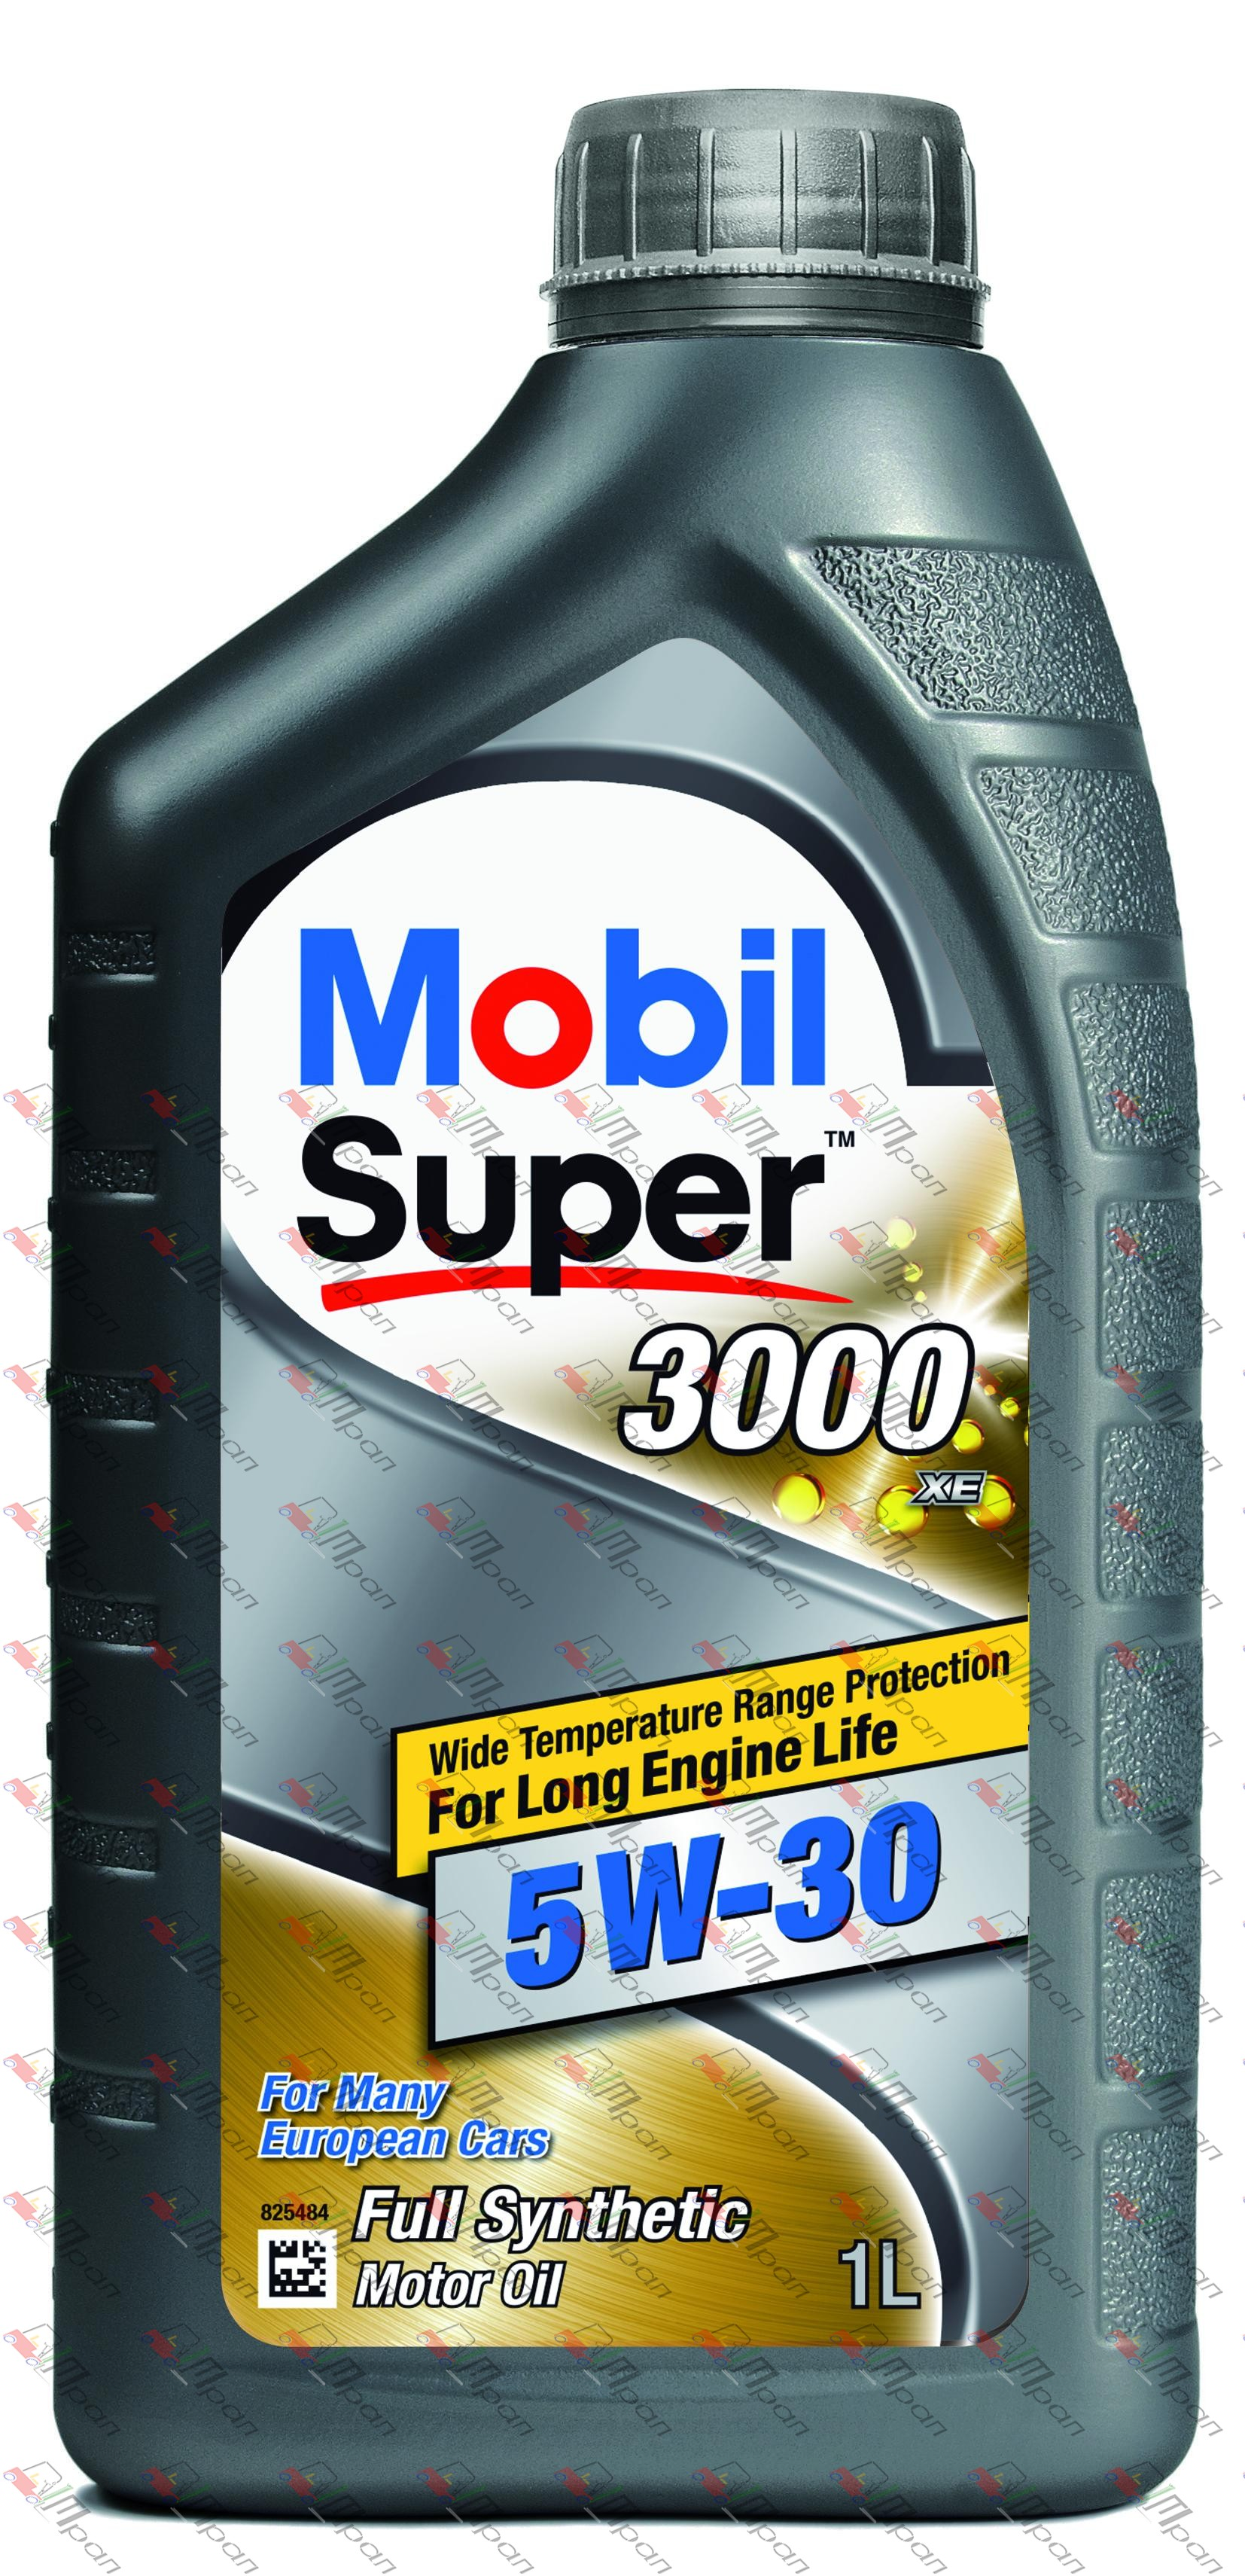 Mobil Масло моторное синтетич. Mobil Super 3000 XE 5w30 1л